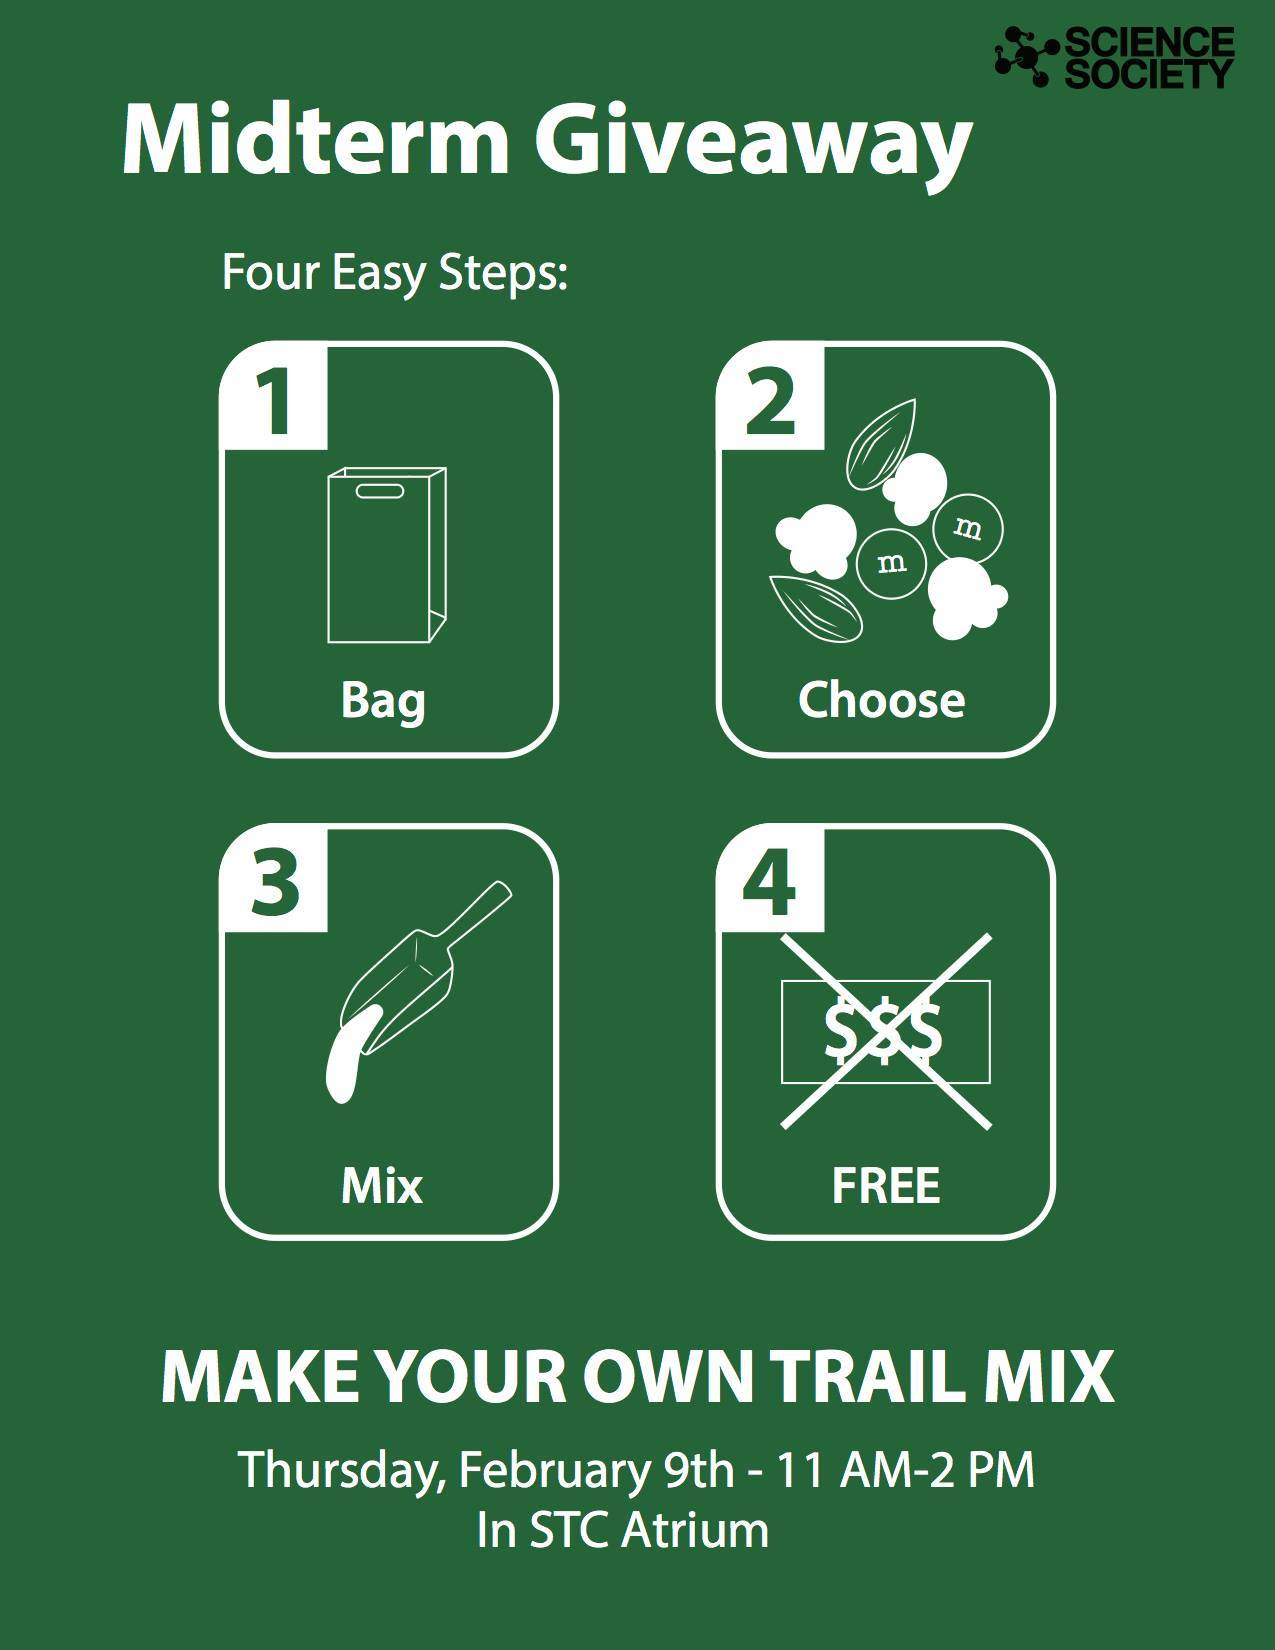 Science Society: Do it yourself trail mix giveaway